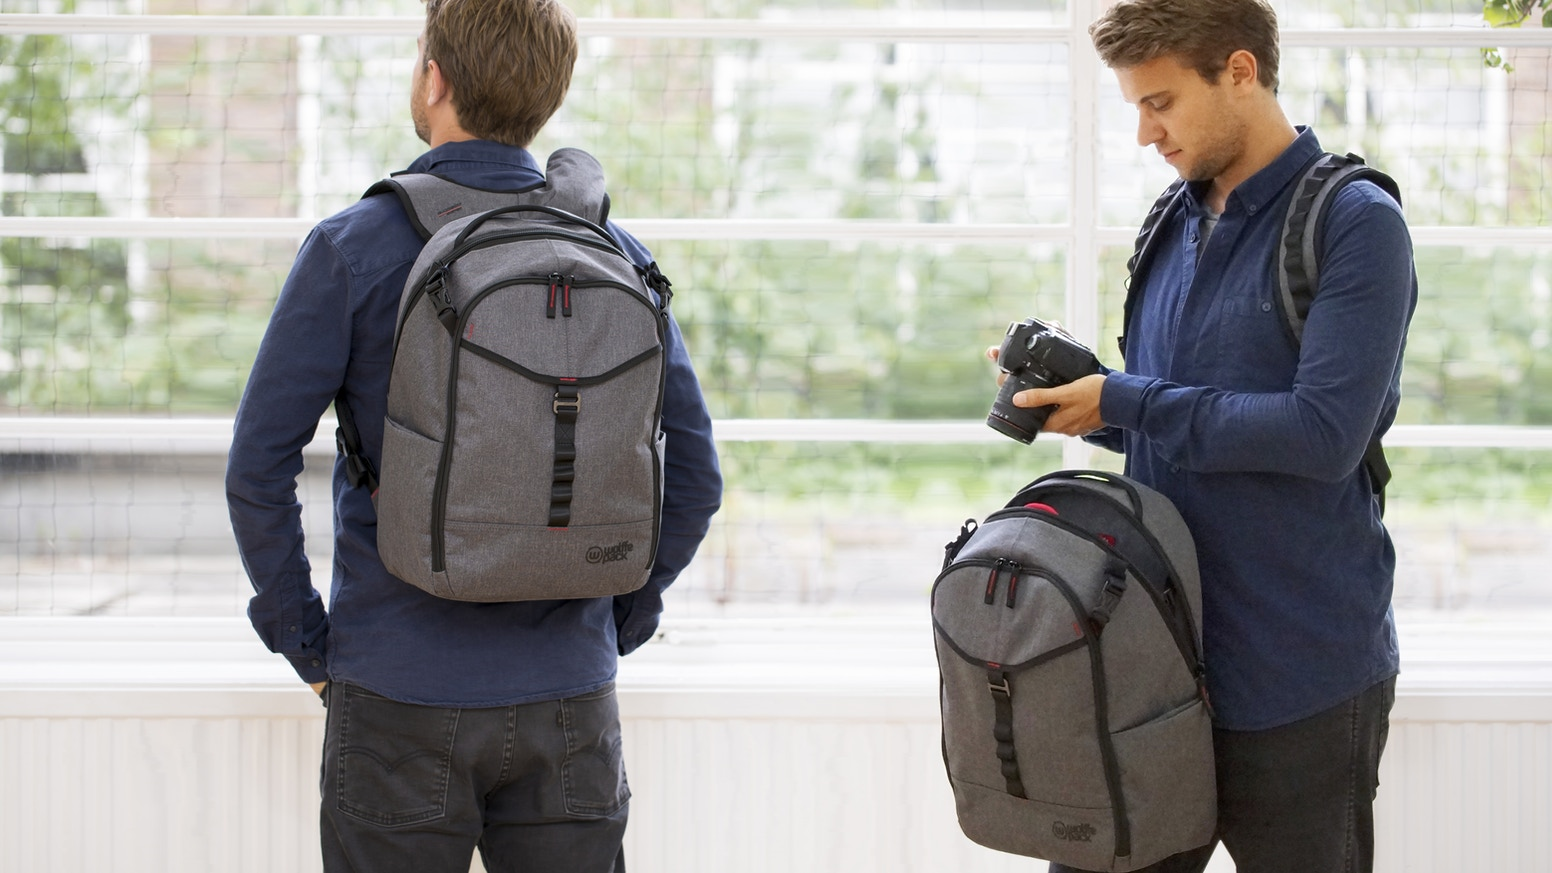 Wolffepack Capture is the ultimate backpack for cameras and all-round access. Swing your gear round to the front without unstrapping.